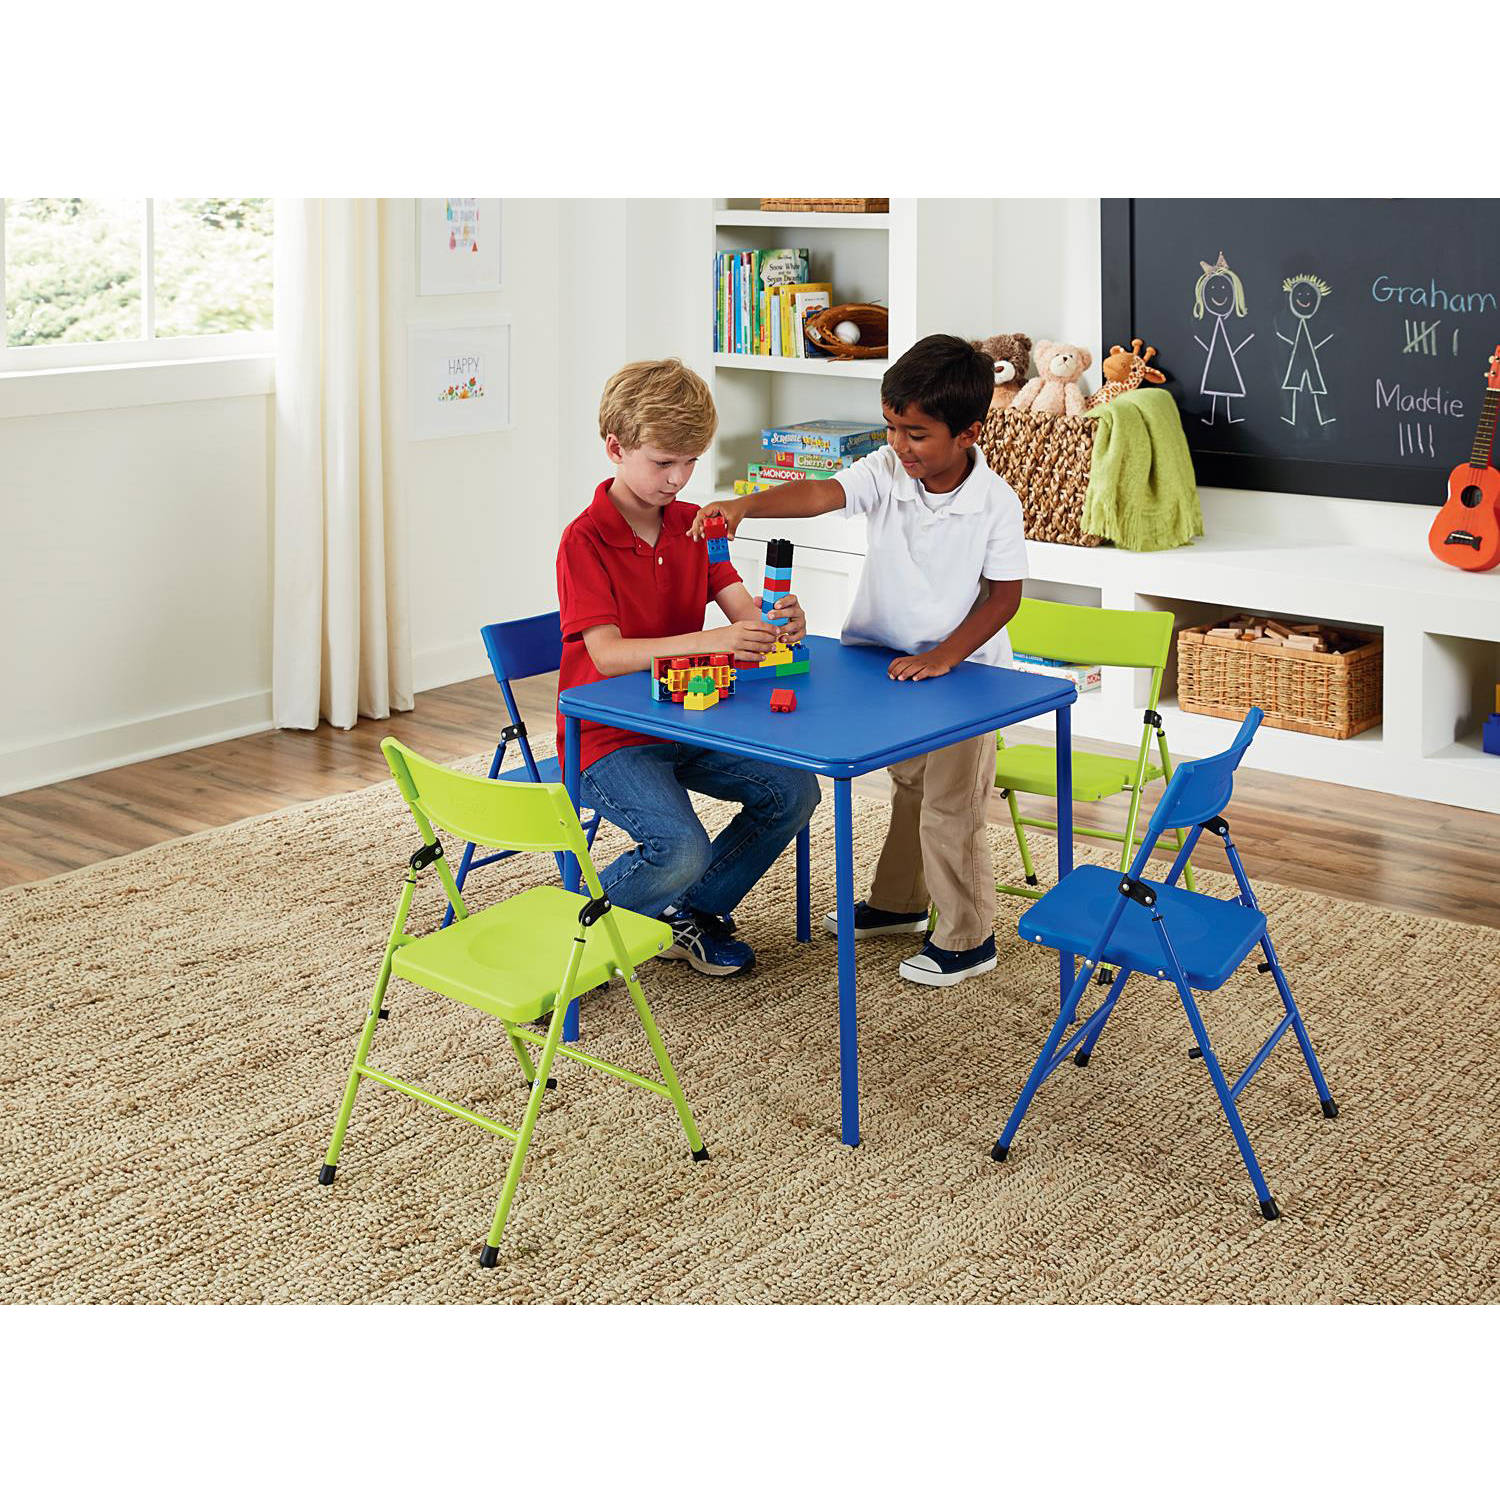 Cosco 5-Piece Kid's Table and Chair Set, Multiple Colors